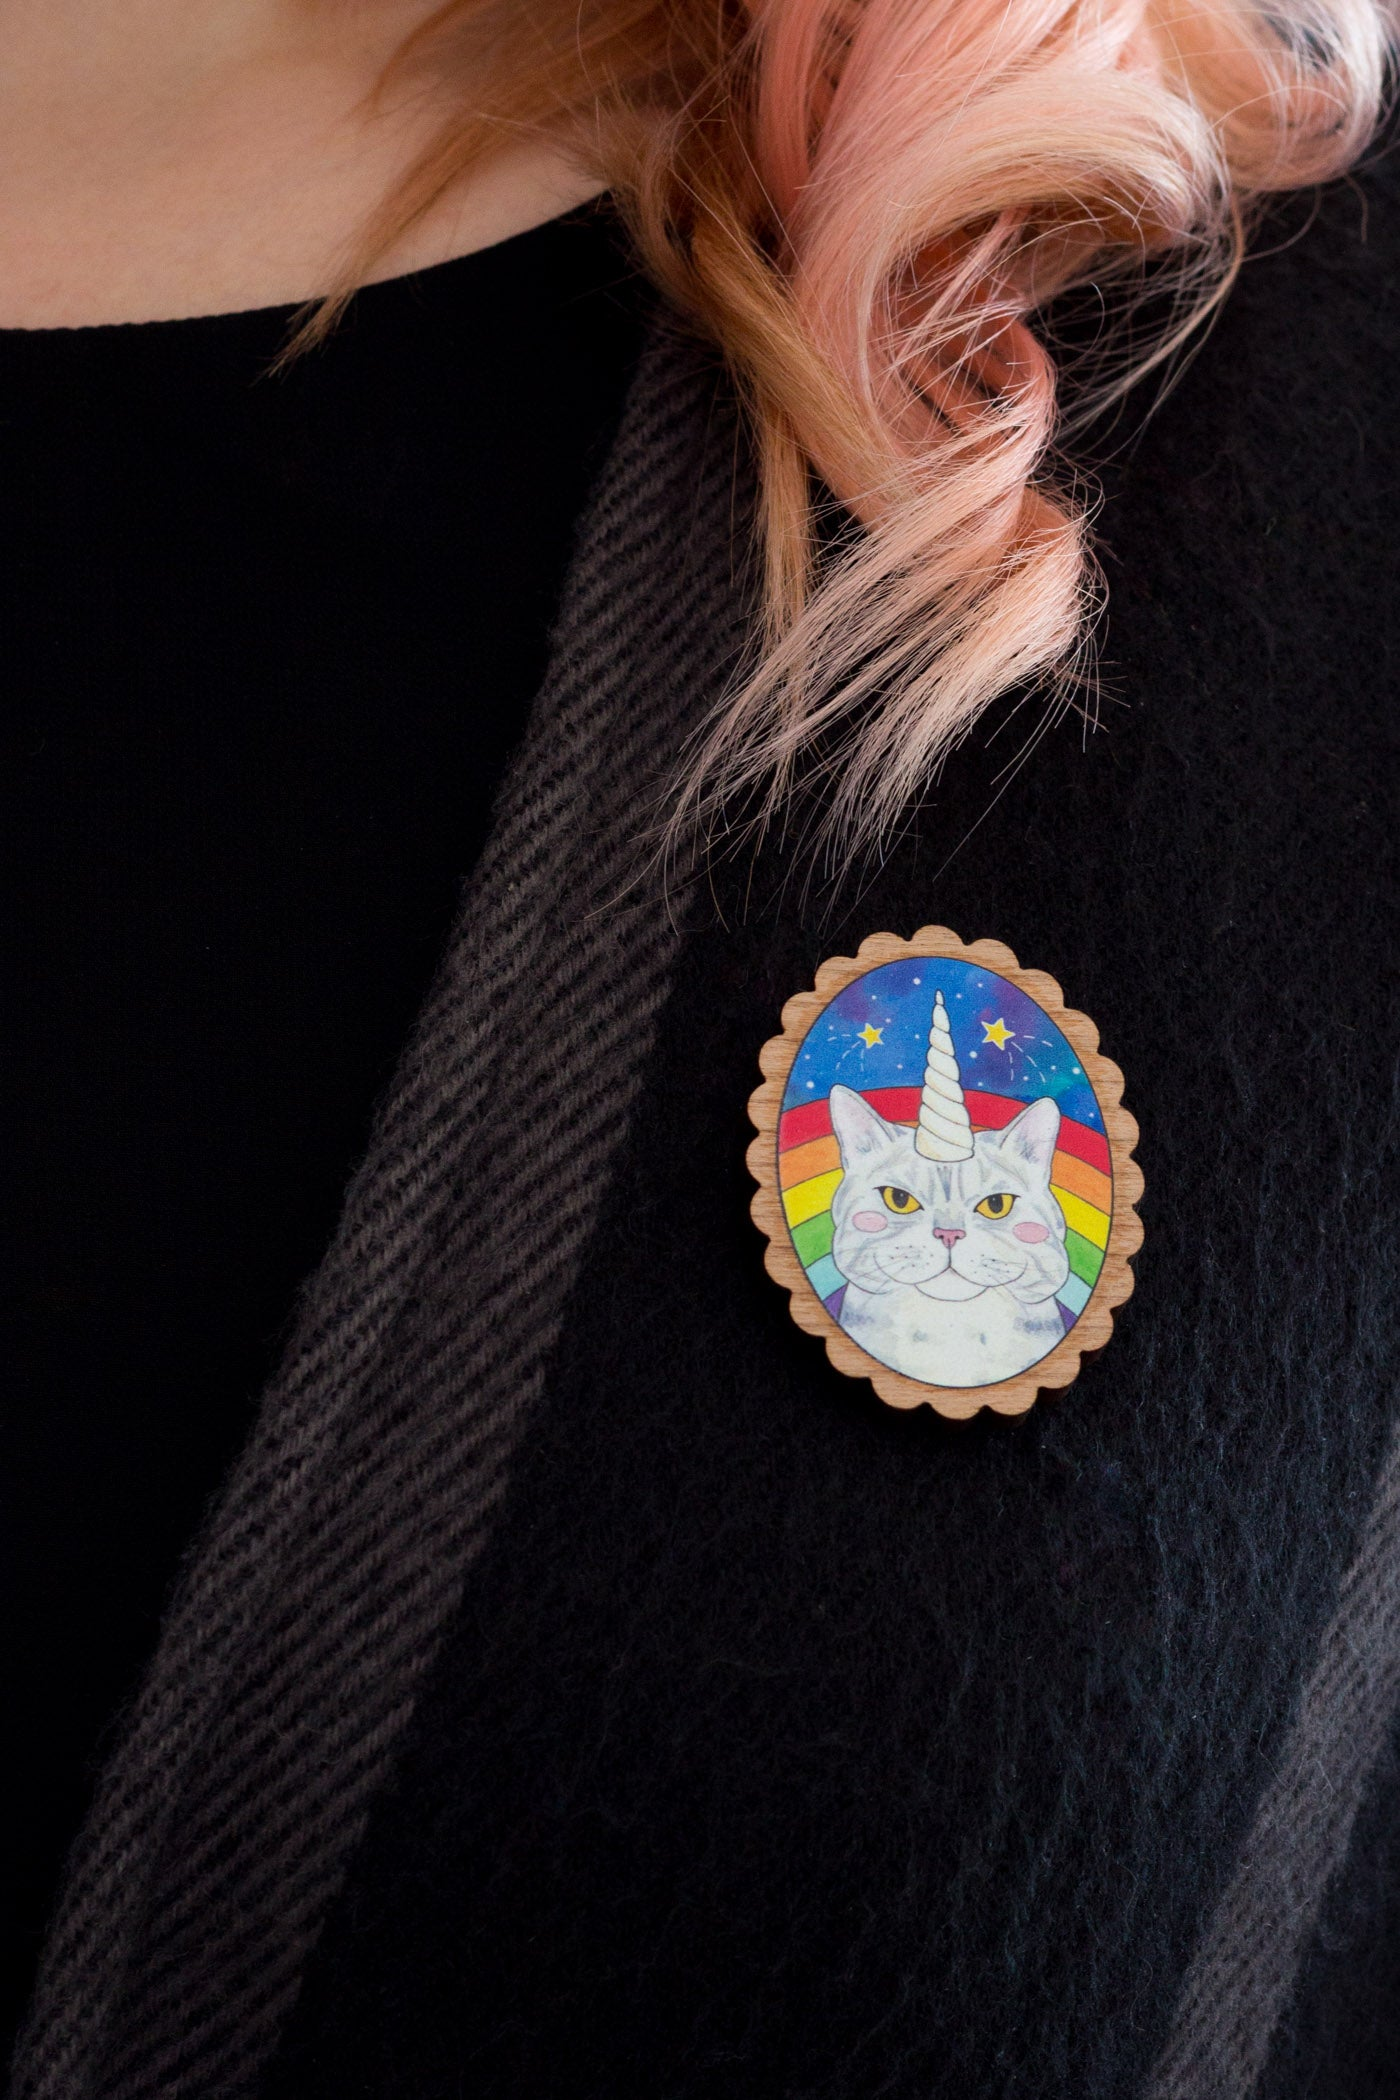 Magical Caticorn Cosmic Rainbow Wooden Brooch - A Rose Cast